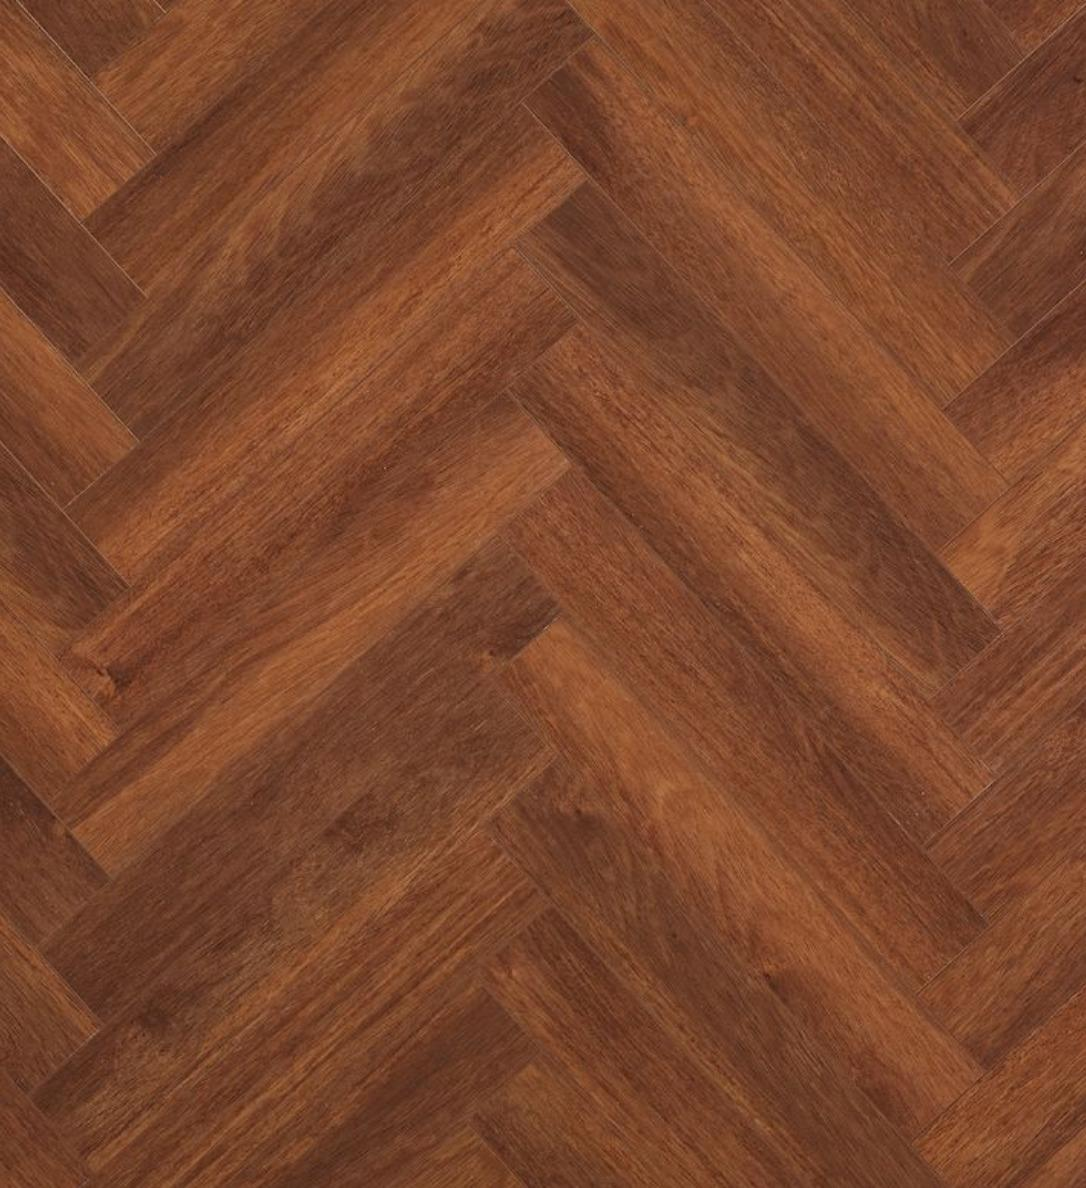 Berry Alloc Chateau Merbau Brown Parquet Herringbone Laminate Flooring